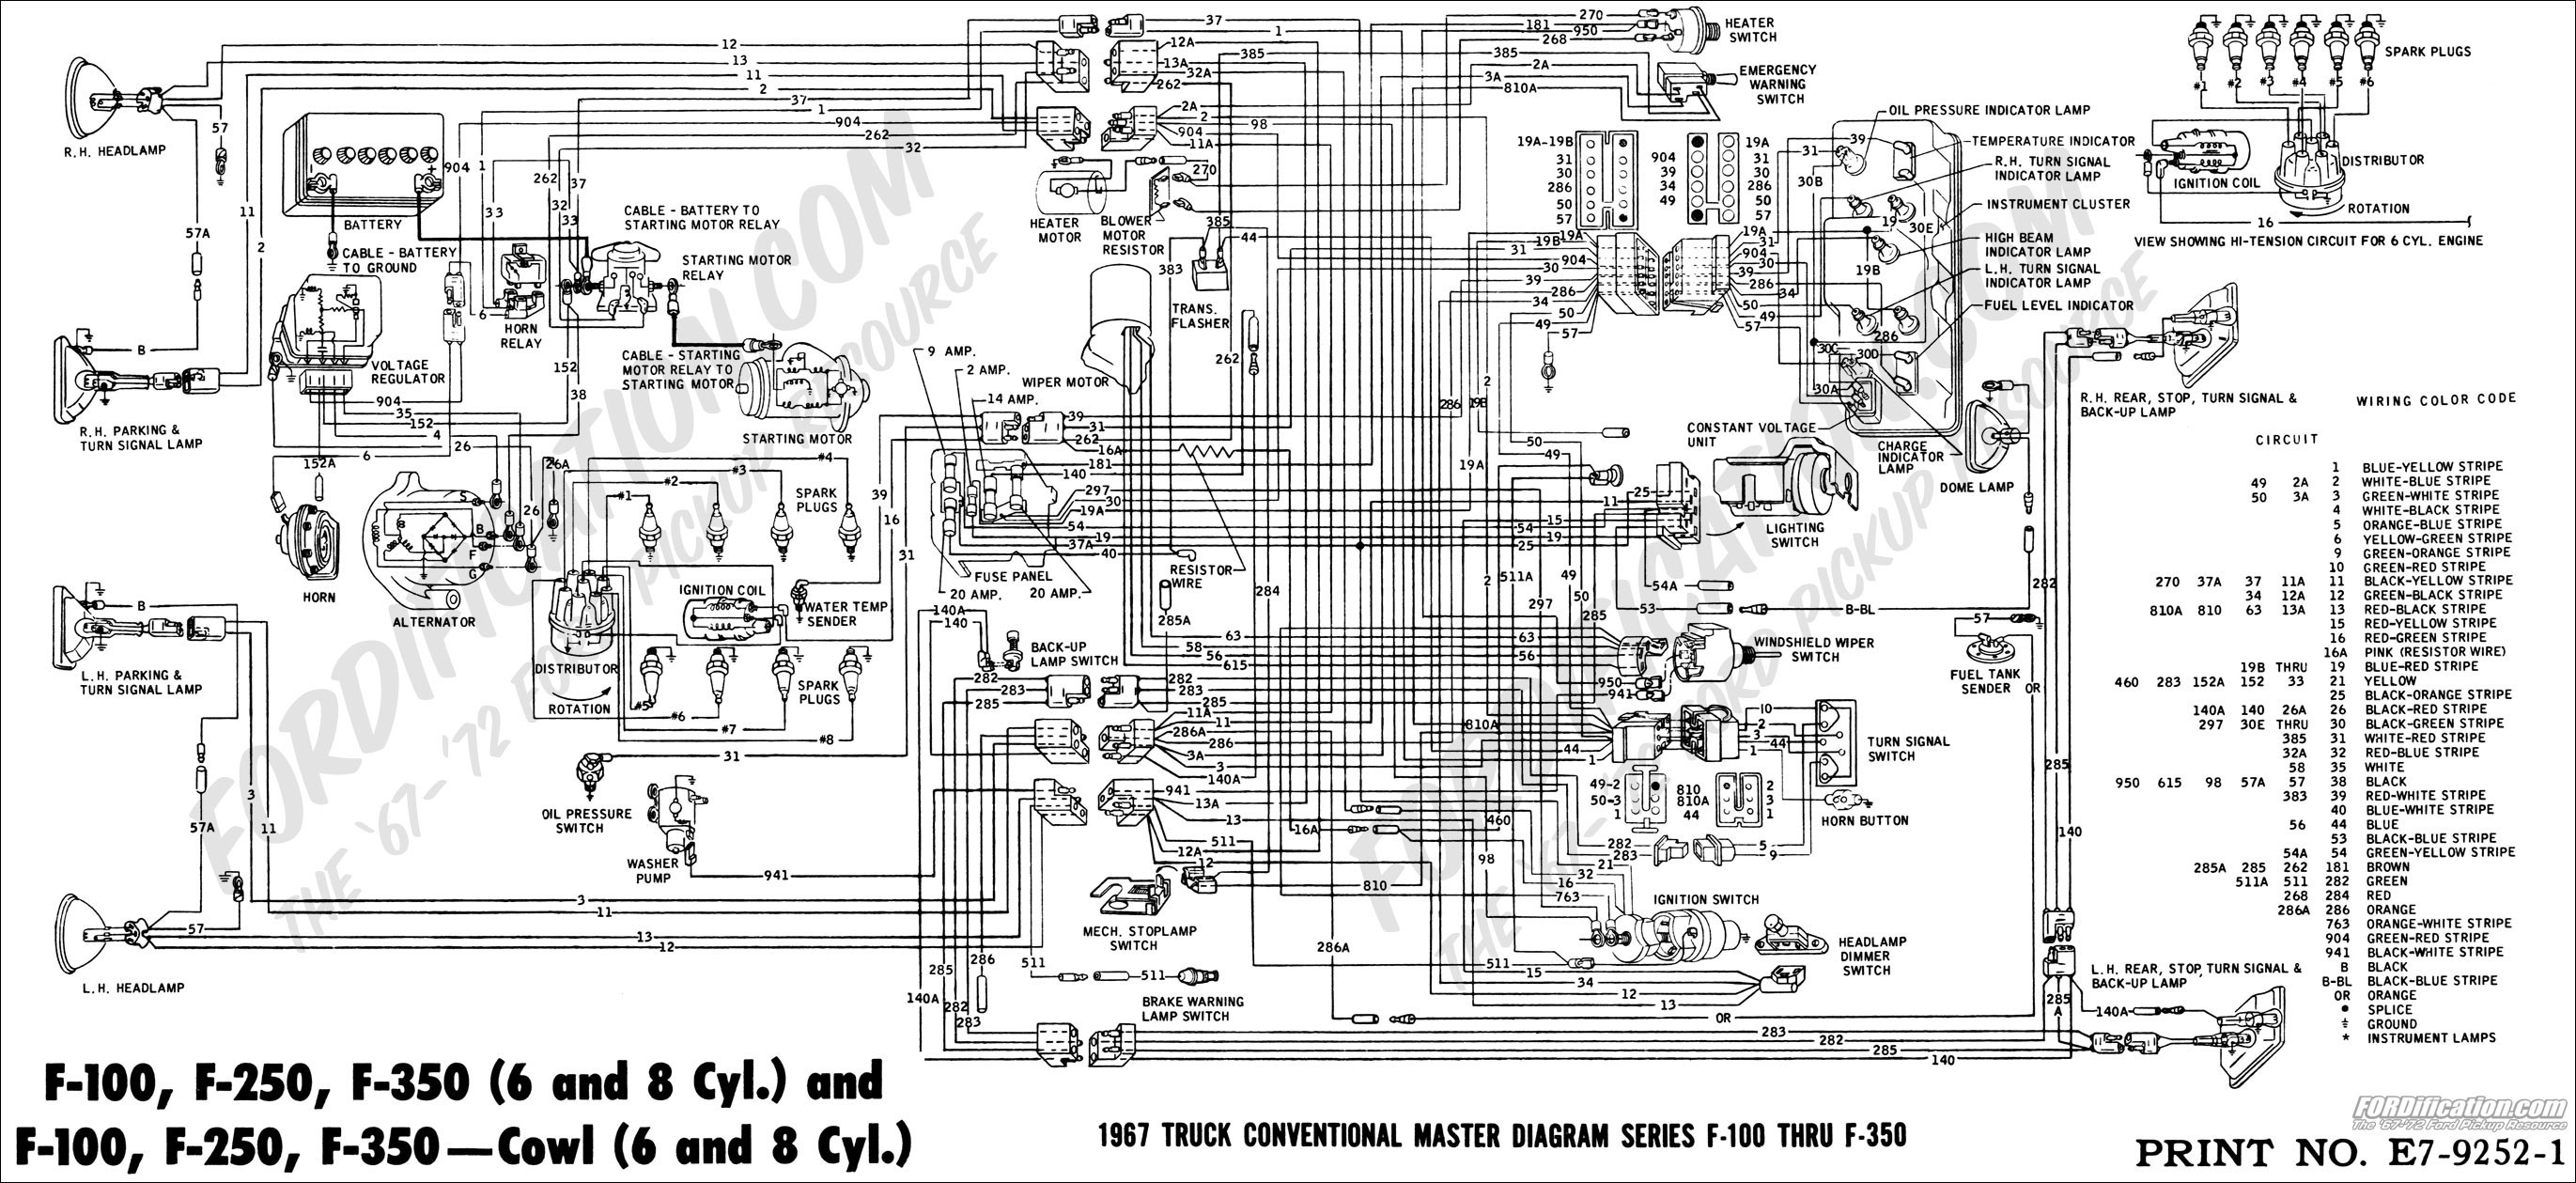 1987 ford wiring diagram private sharing about wiring diagram u2022 rh caraccessoriesandsoftware co uk